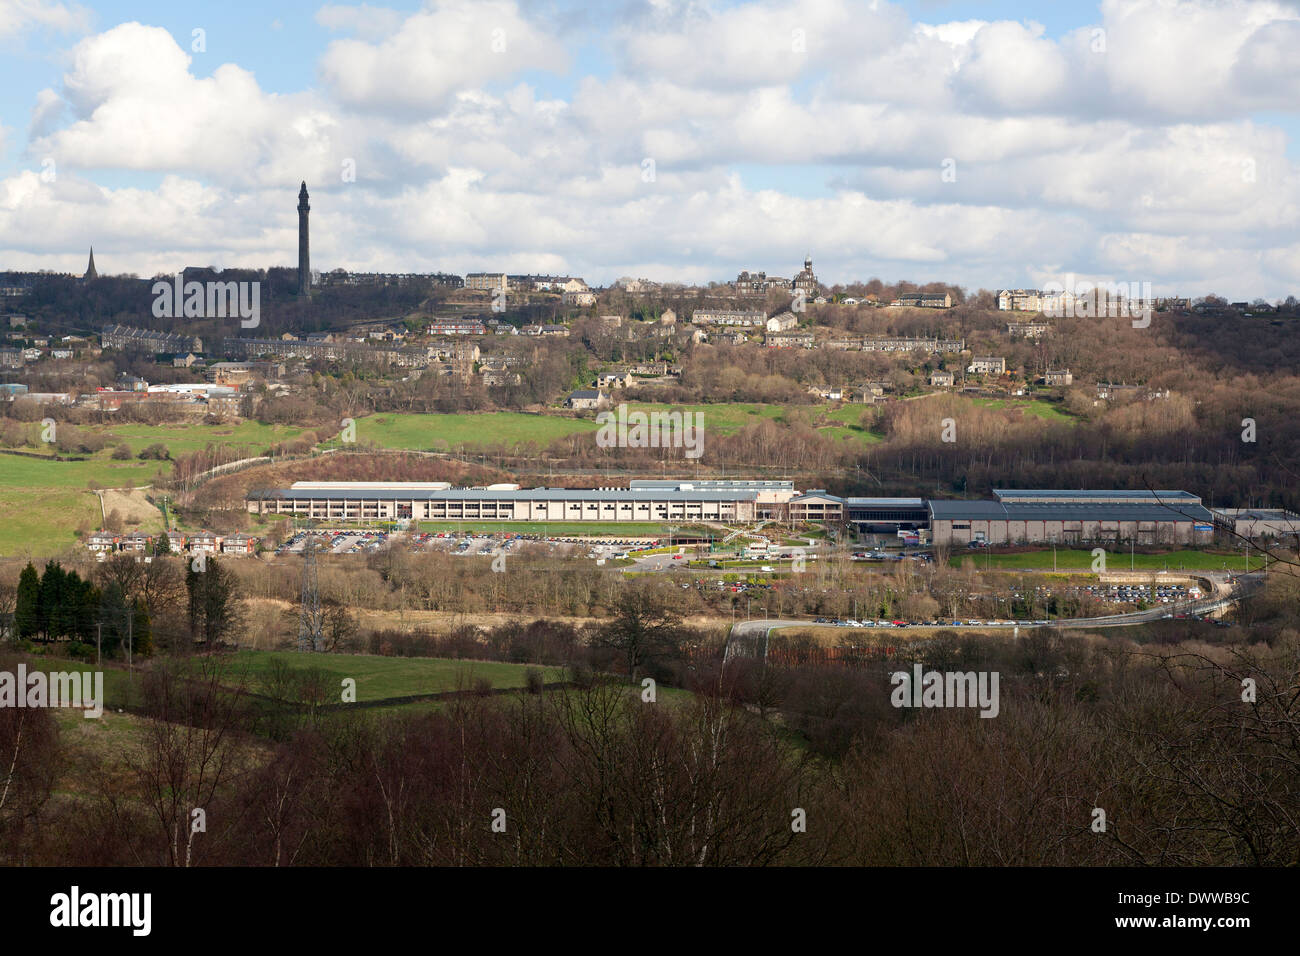 Lloyds Bank Data Centre with Wainhouse Tower in the distance, Copley, West Yorkshire Stock Photo